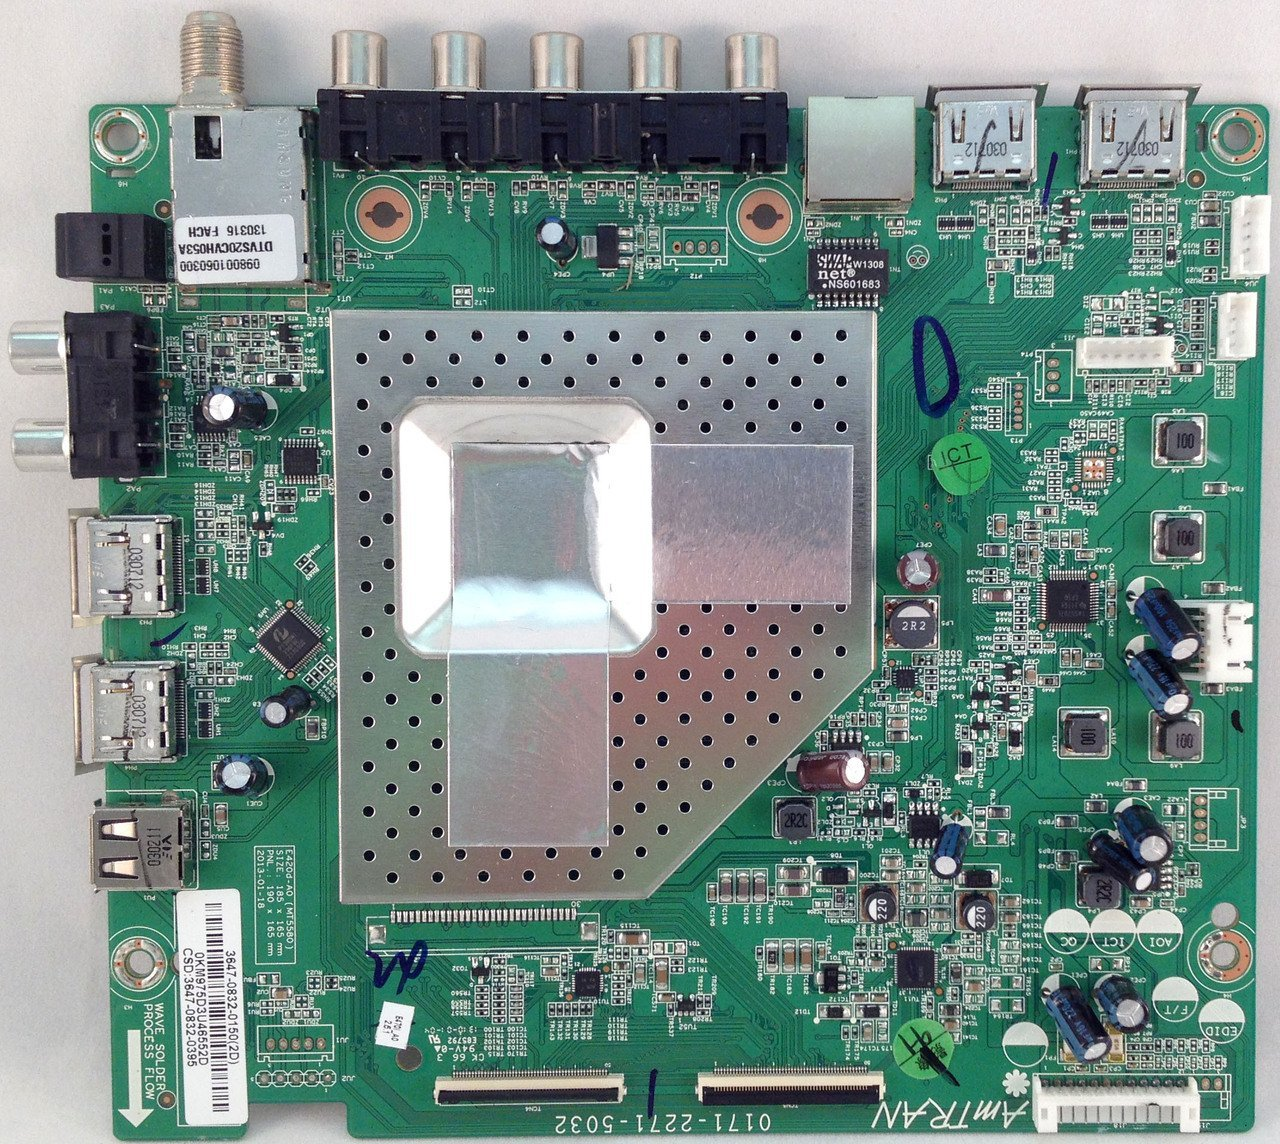 Vizio Main Board 3647-0832-0150 for E470i-A0 (0171-2271-5032)